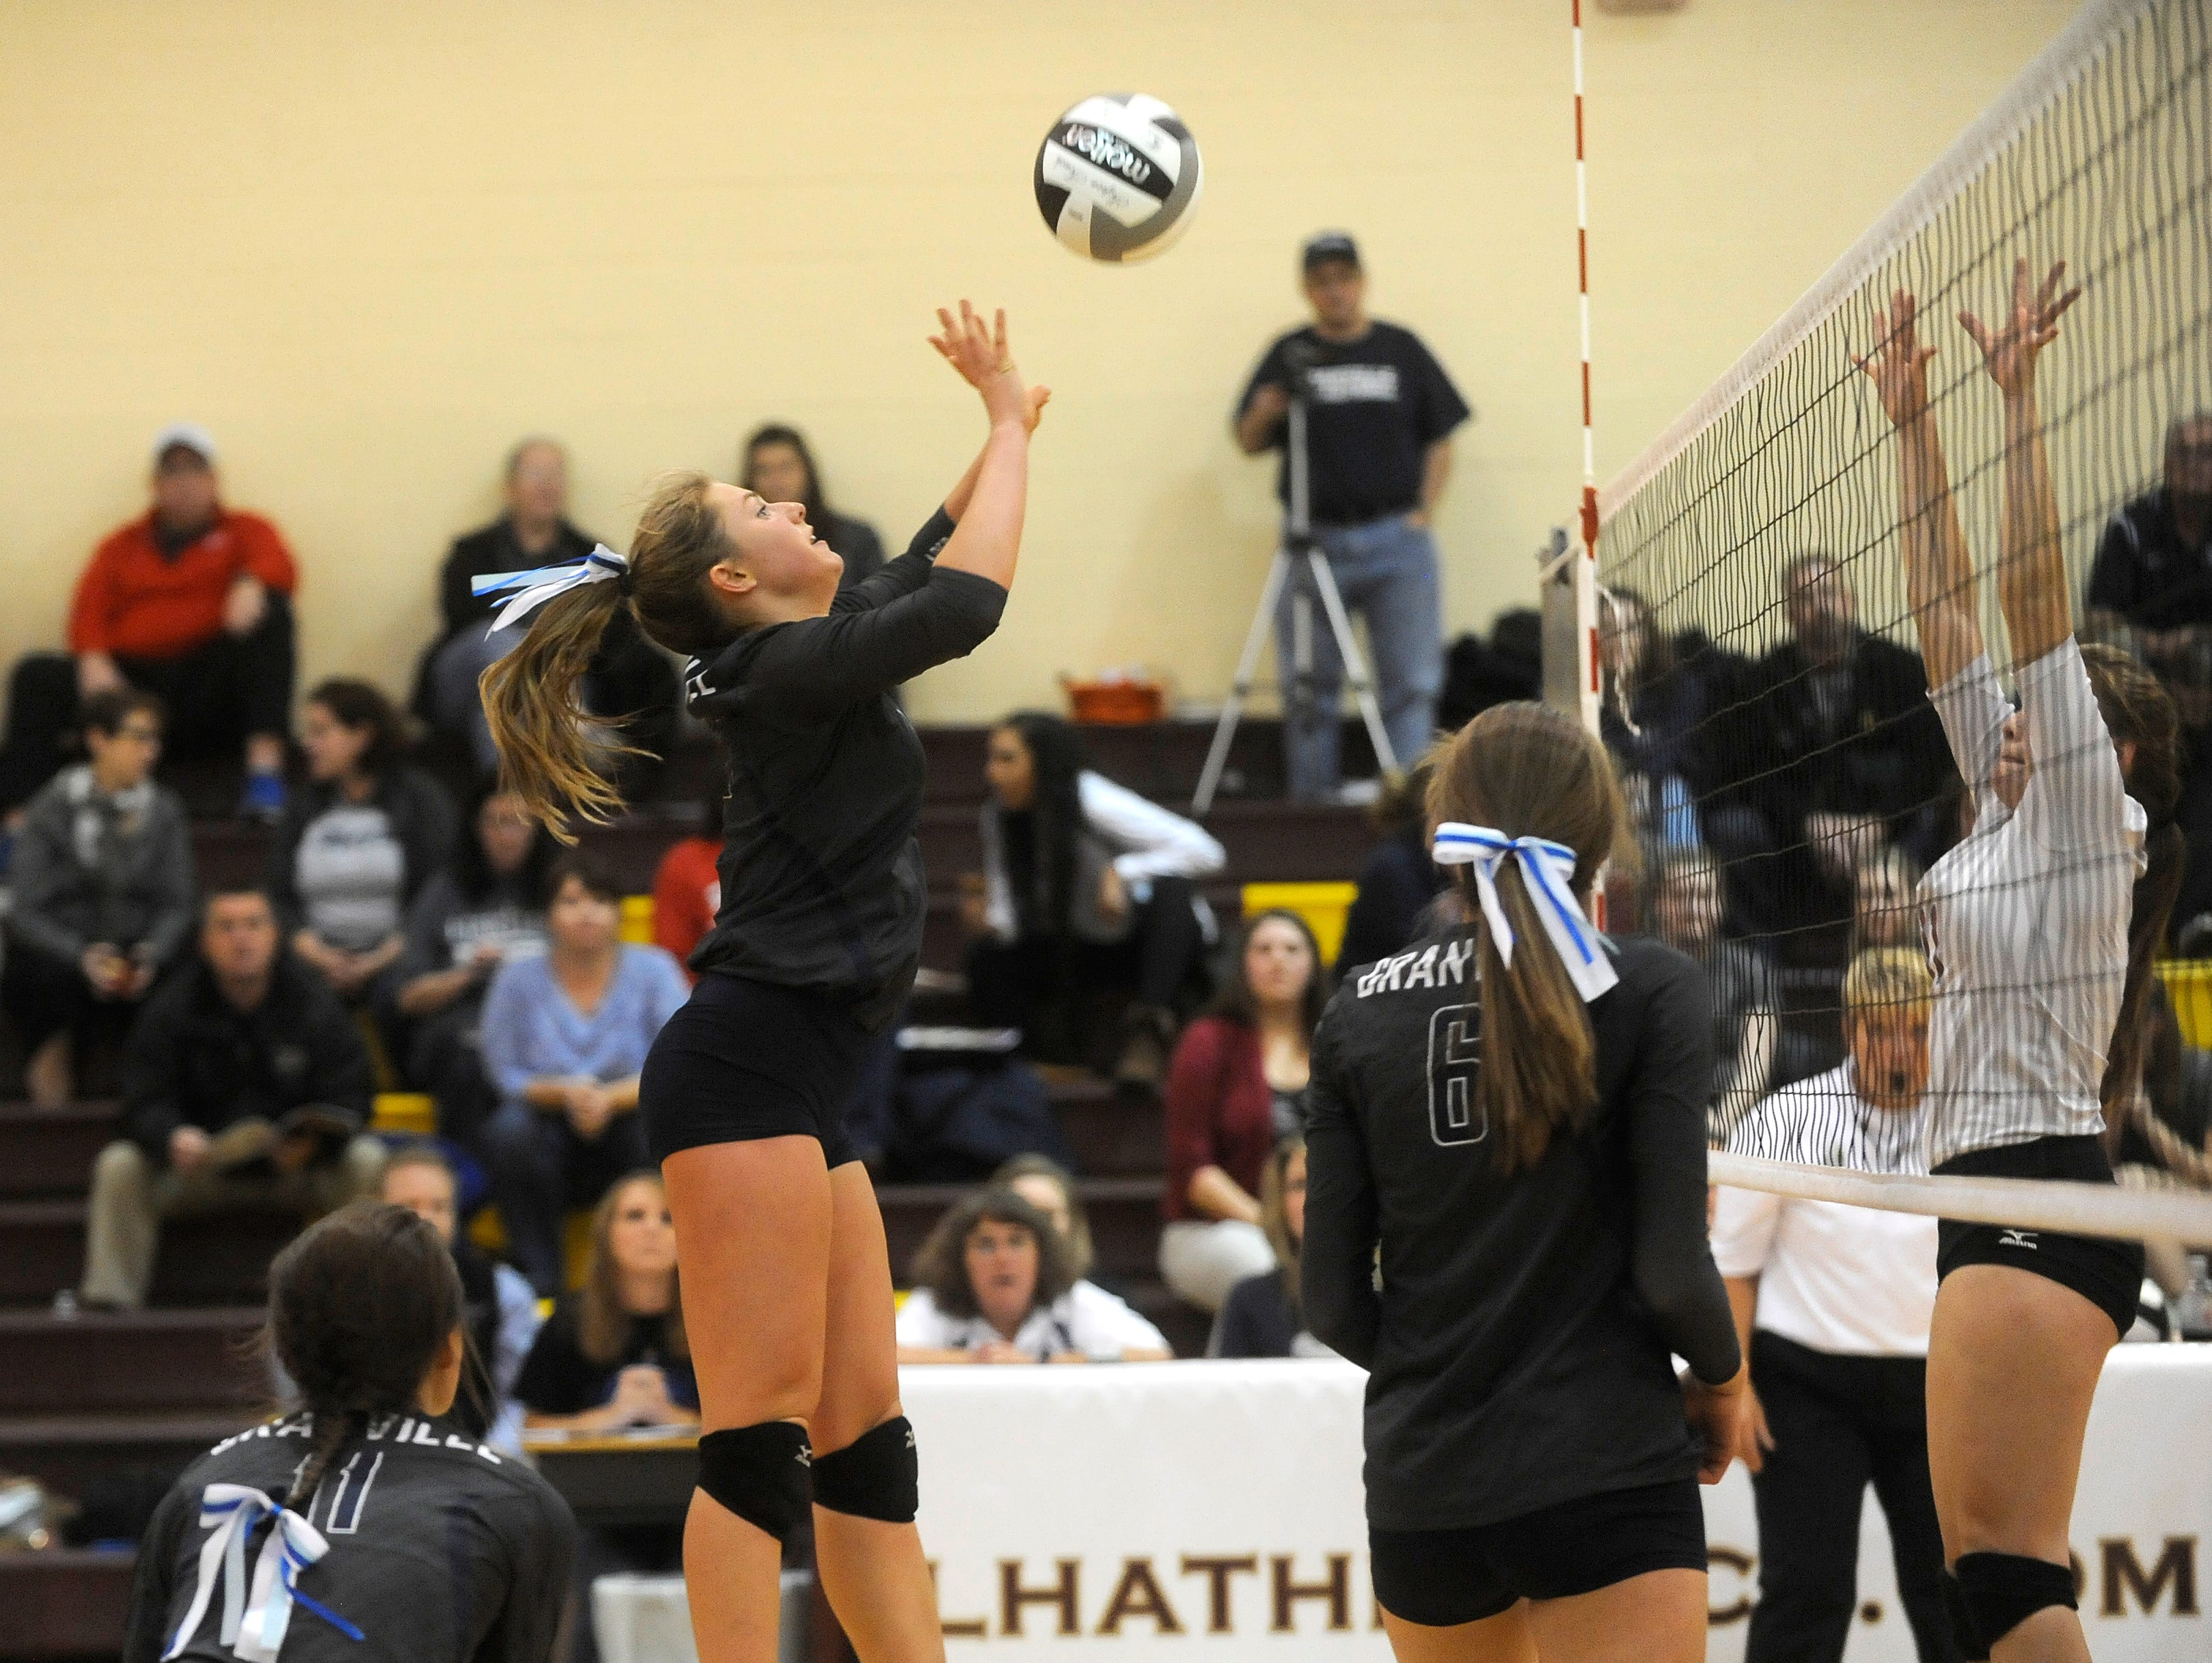 Granville's Christina Harrison sends the ball at Lakewood during a Division II district semifinal on Thursday, Oct. 29, 2015, at Licking Heights. The Blue Aces defeated the Lancers 3-1 and will advance to play Bishop Hartley in the district finals at 1 p.m. on Saturday at Licking Heights.